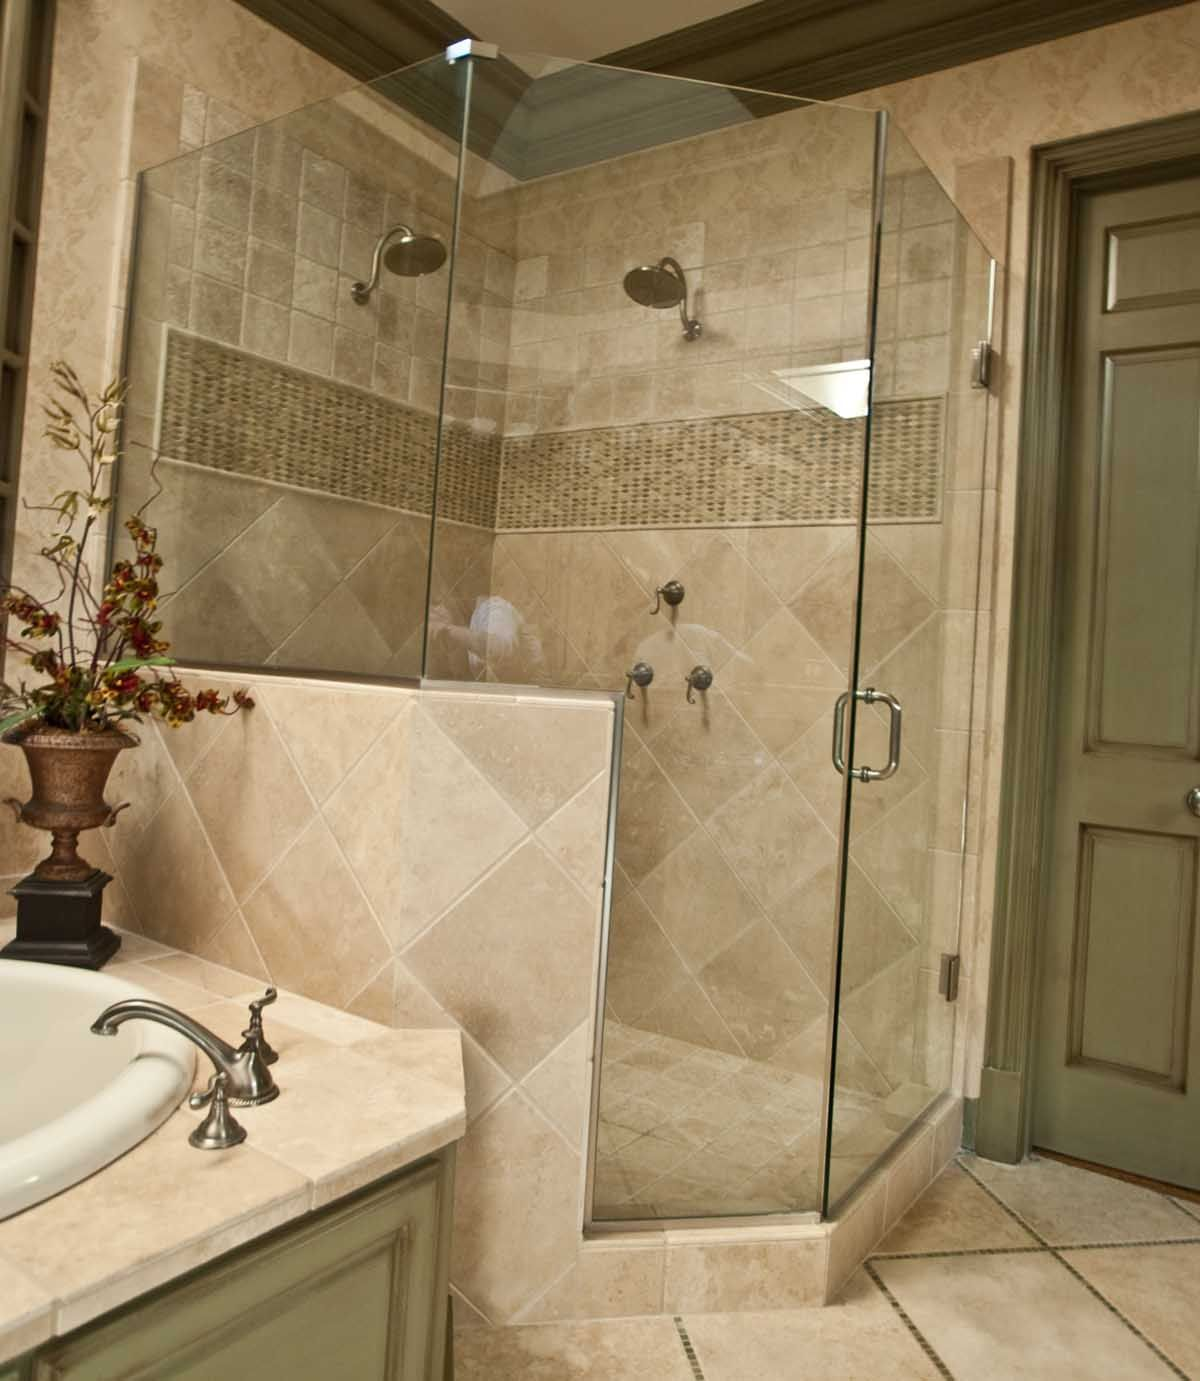 Bathroom remodel ideas 2014 - Bathroom Designs